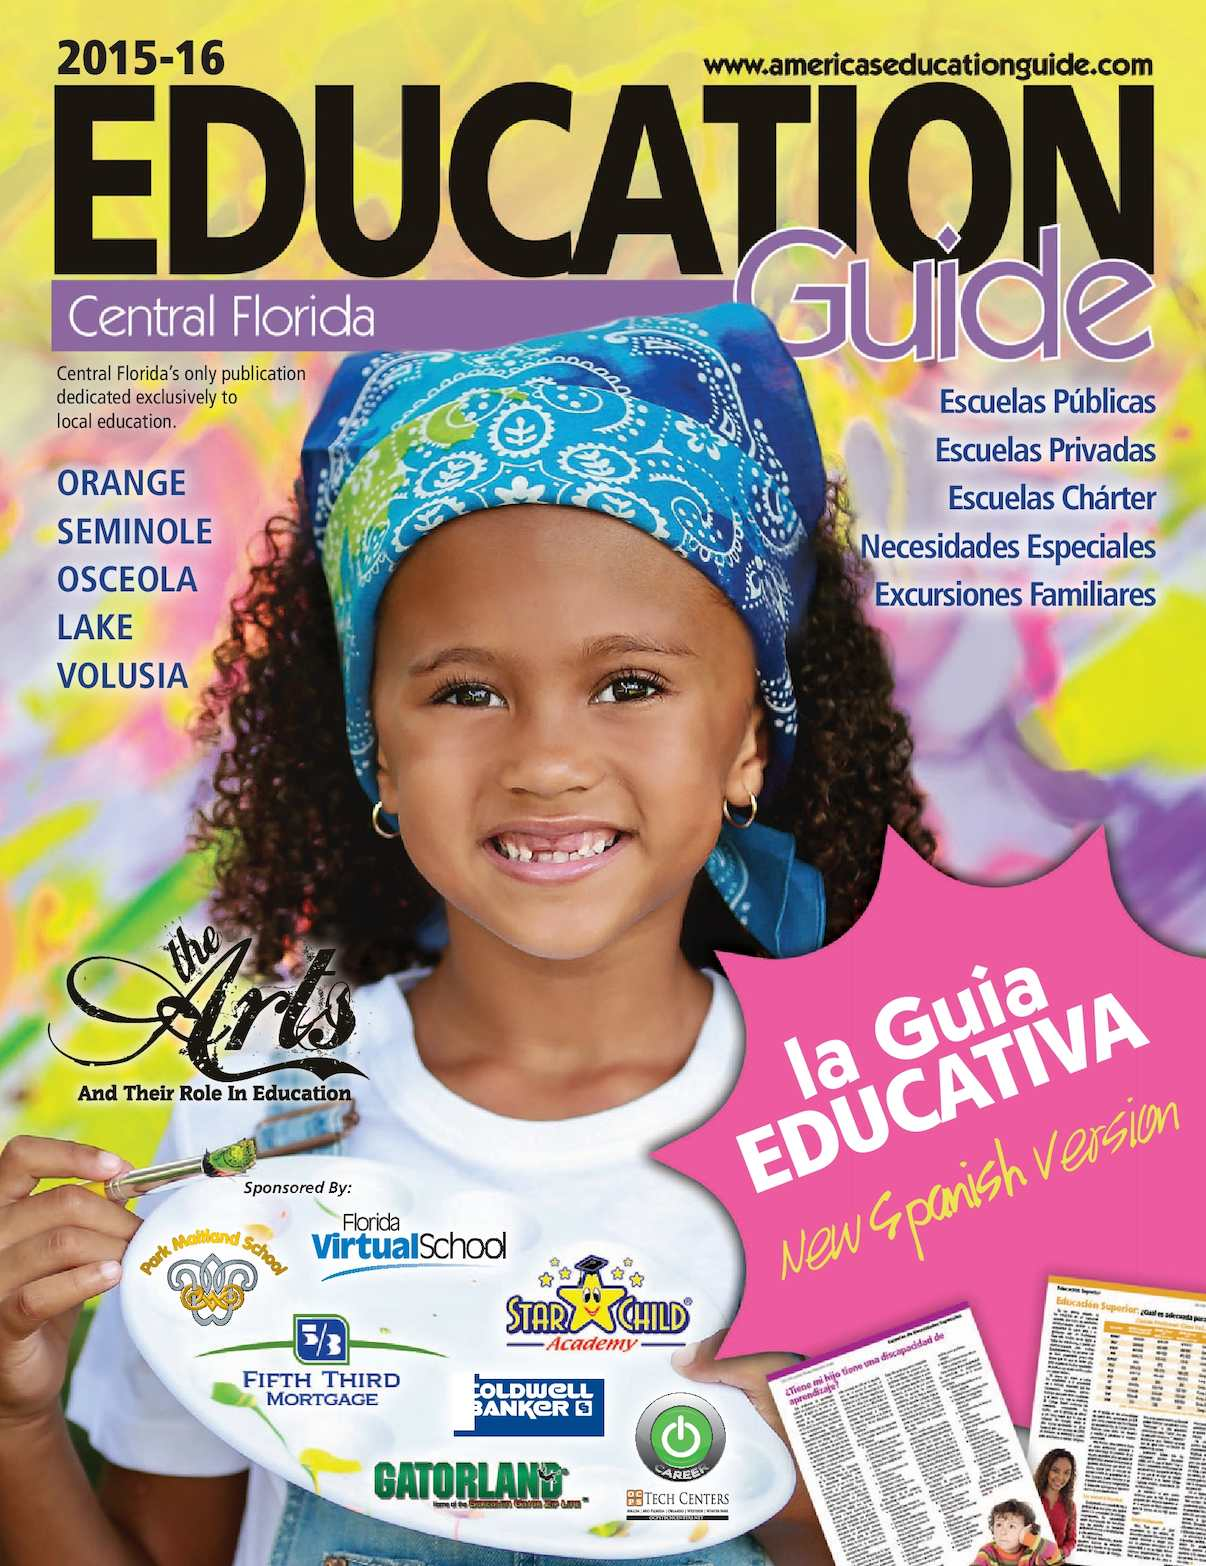 septimo grado guia del padre para el exito de su hijo spanish version building school and home connections spanish edition